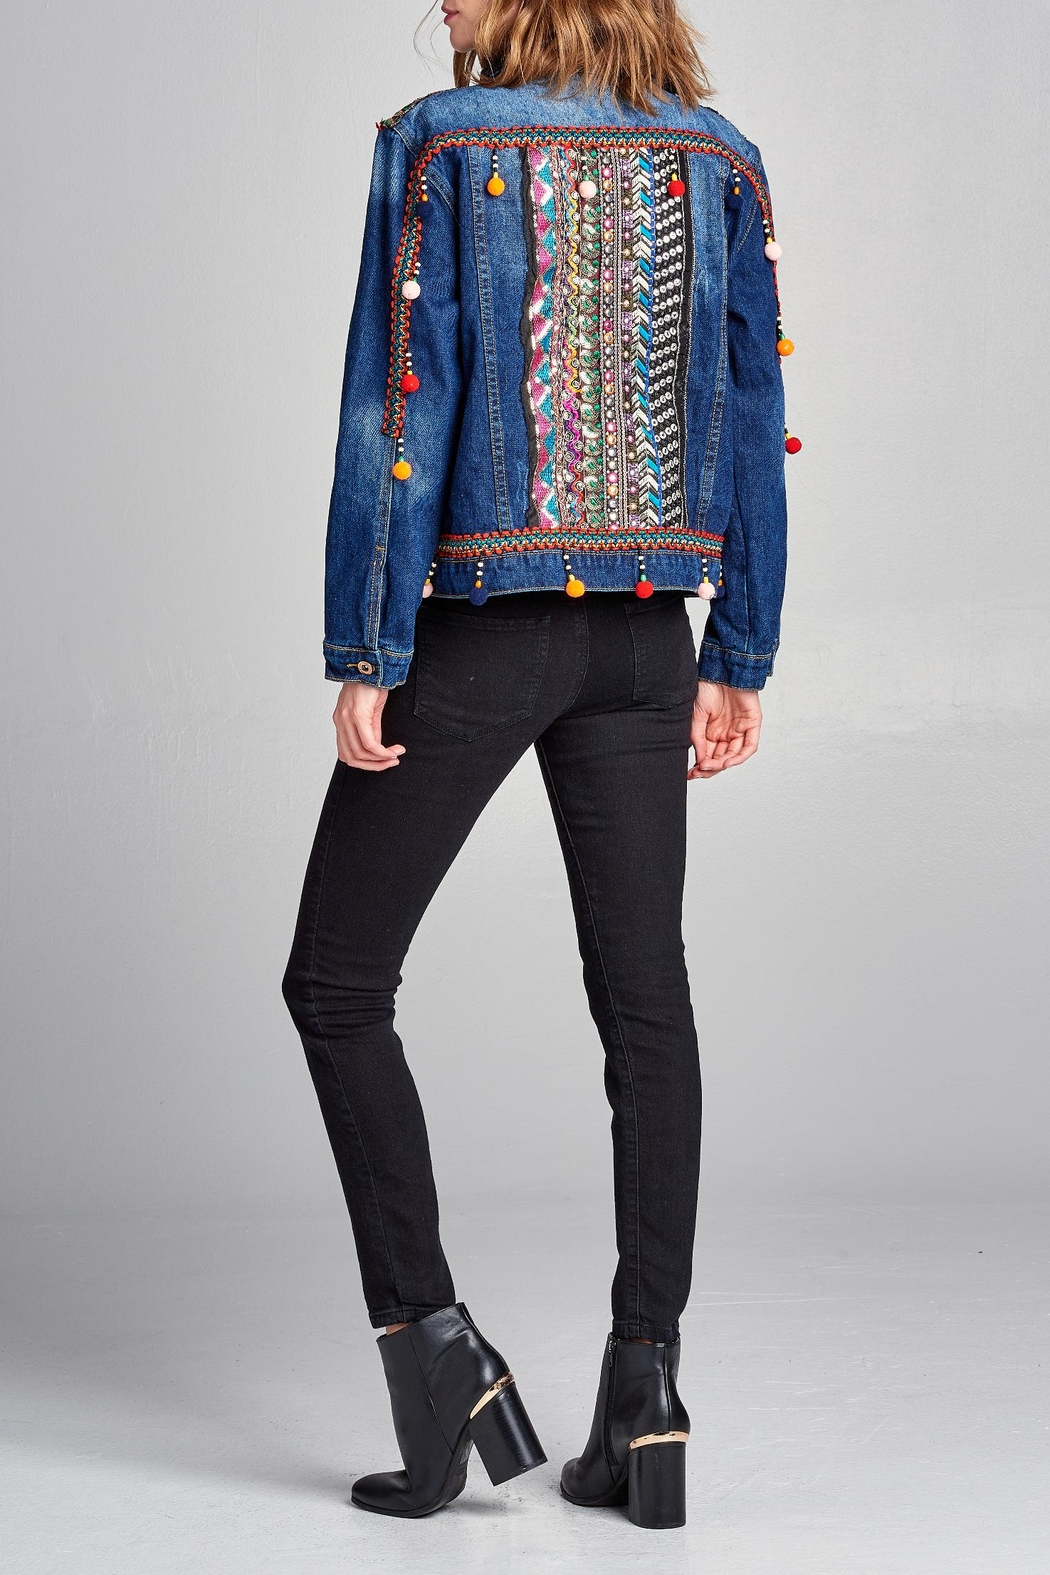 Velzera Pom-Pom Embroidered Jean-Jacket - Side Cropped Image